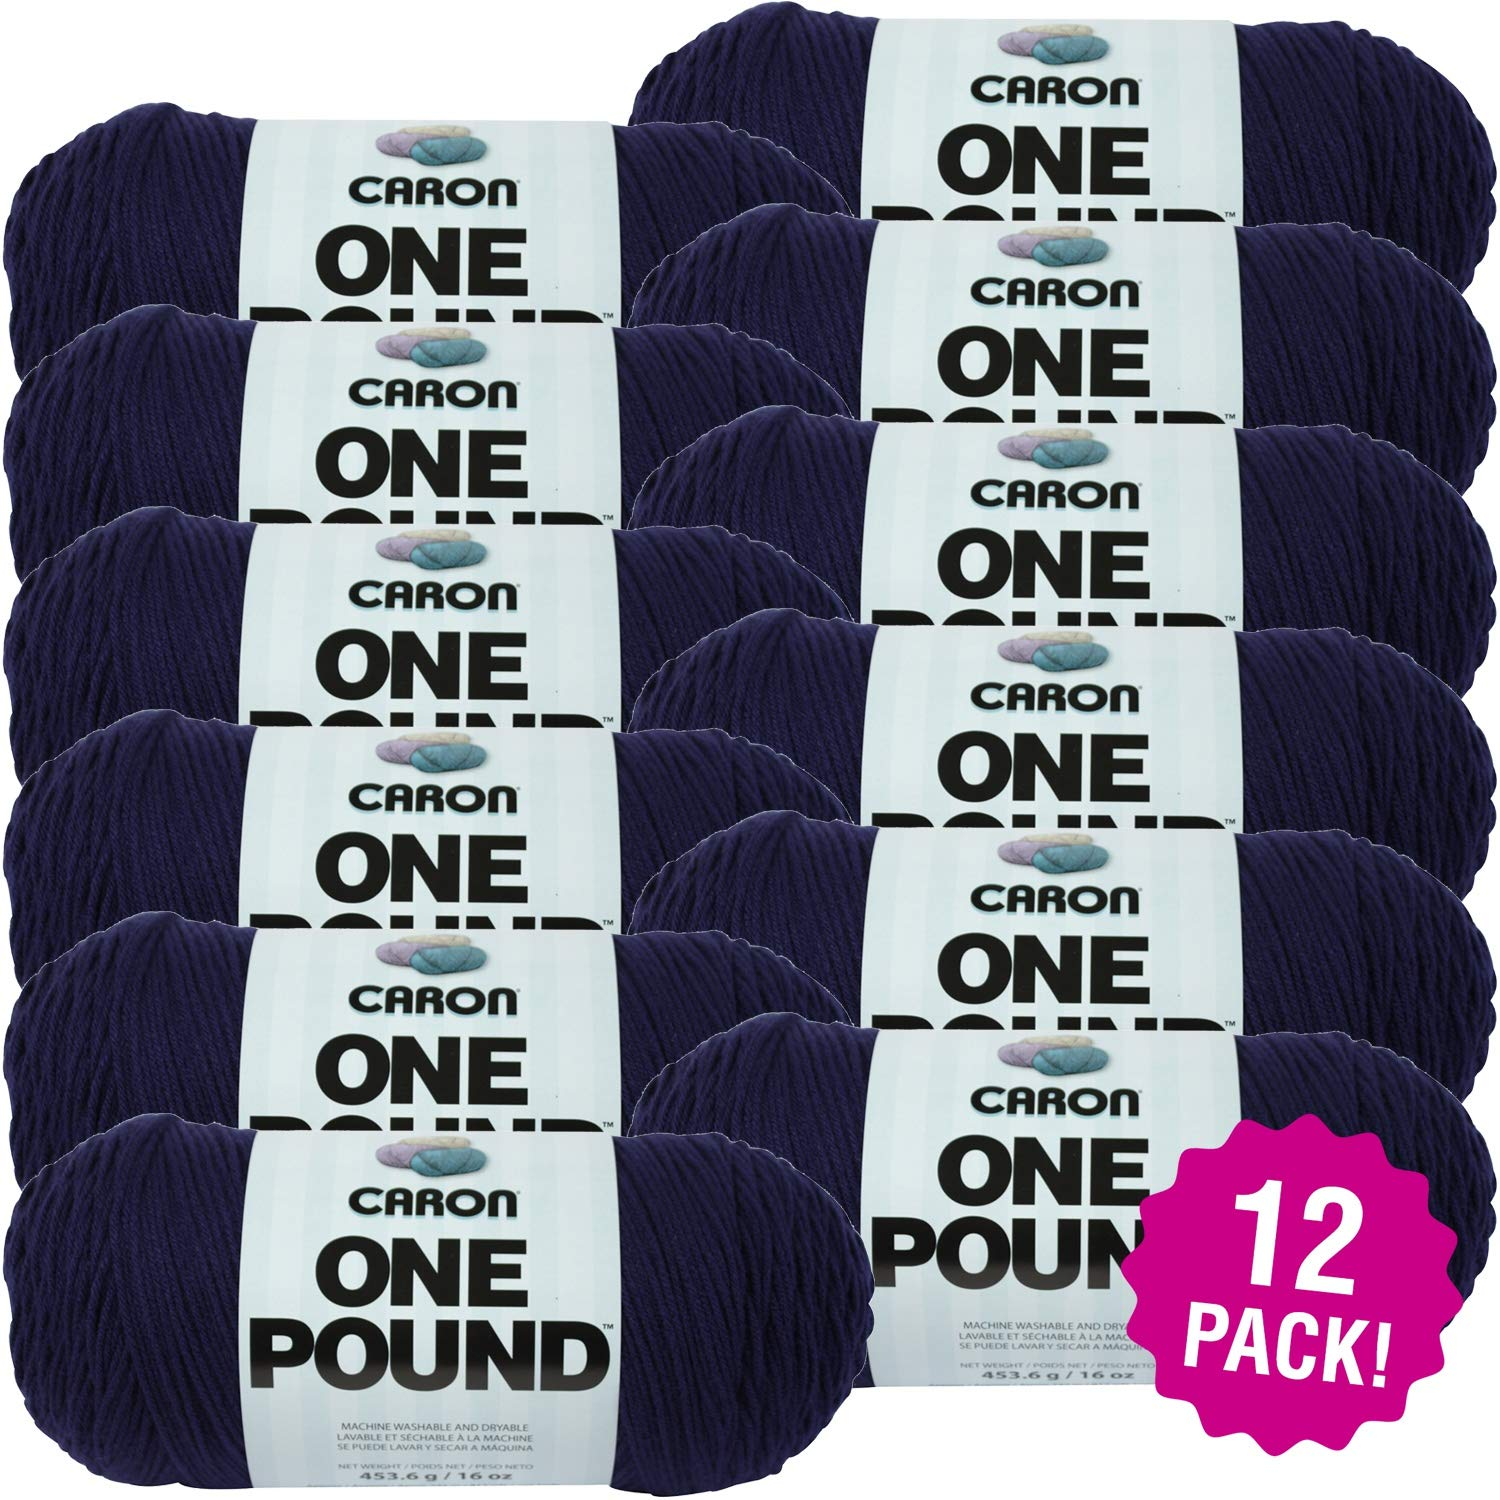 Caron 99583 One Pound Yarn-Midnight Blue, Multipack of 12, Pack